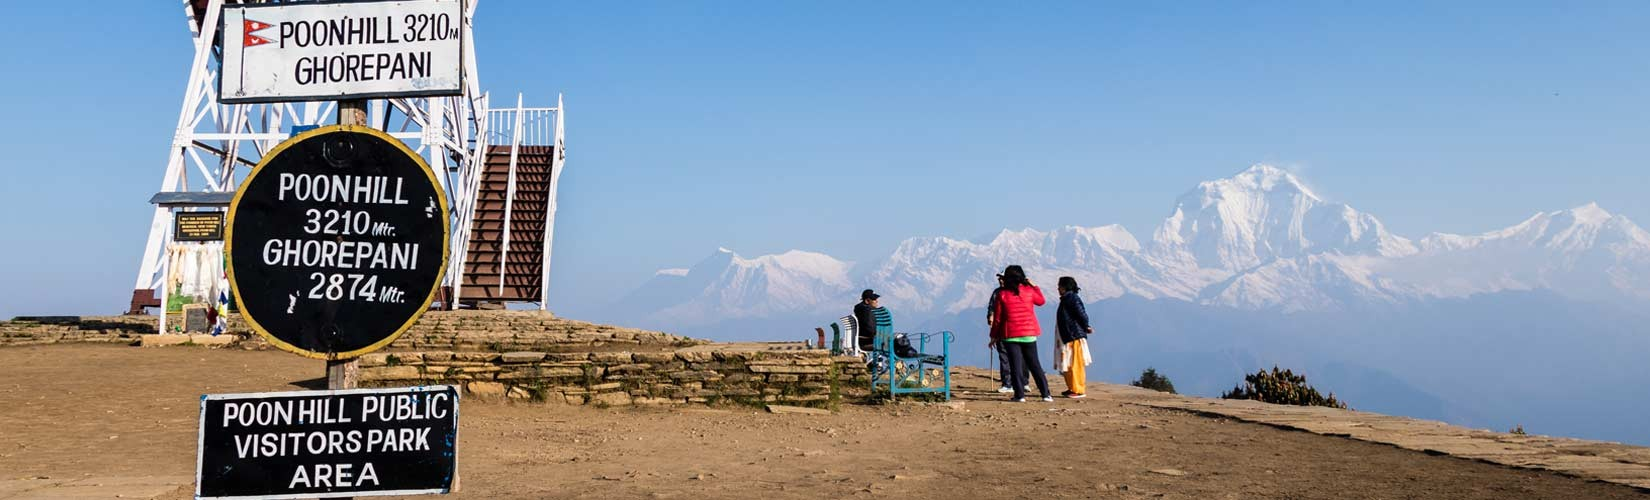 Ghorepani Poon Hill 4 Days Trek